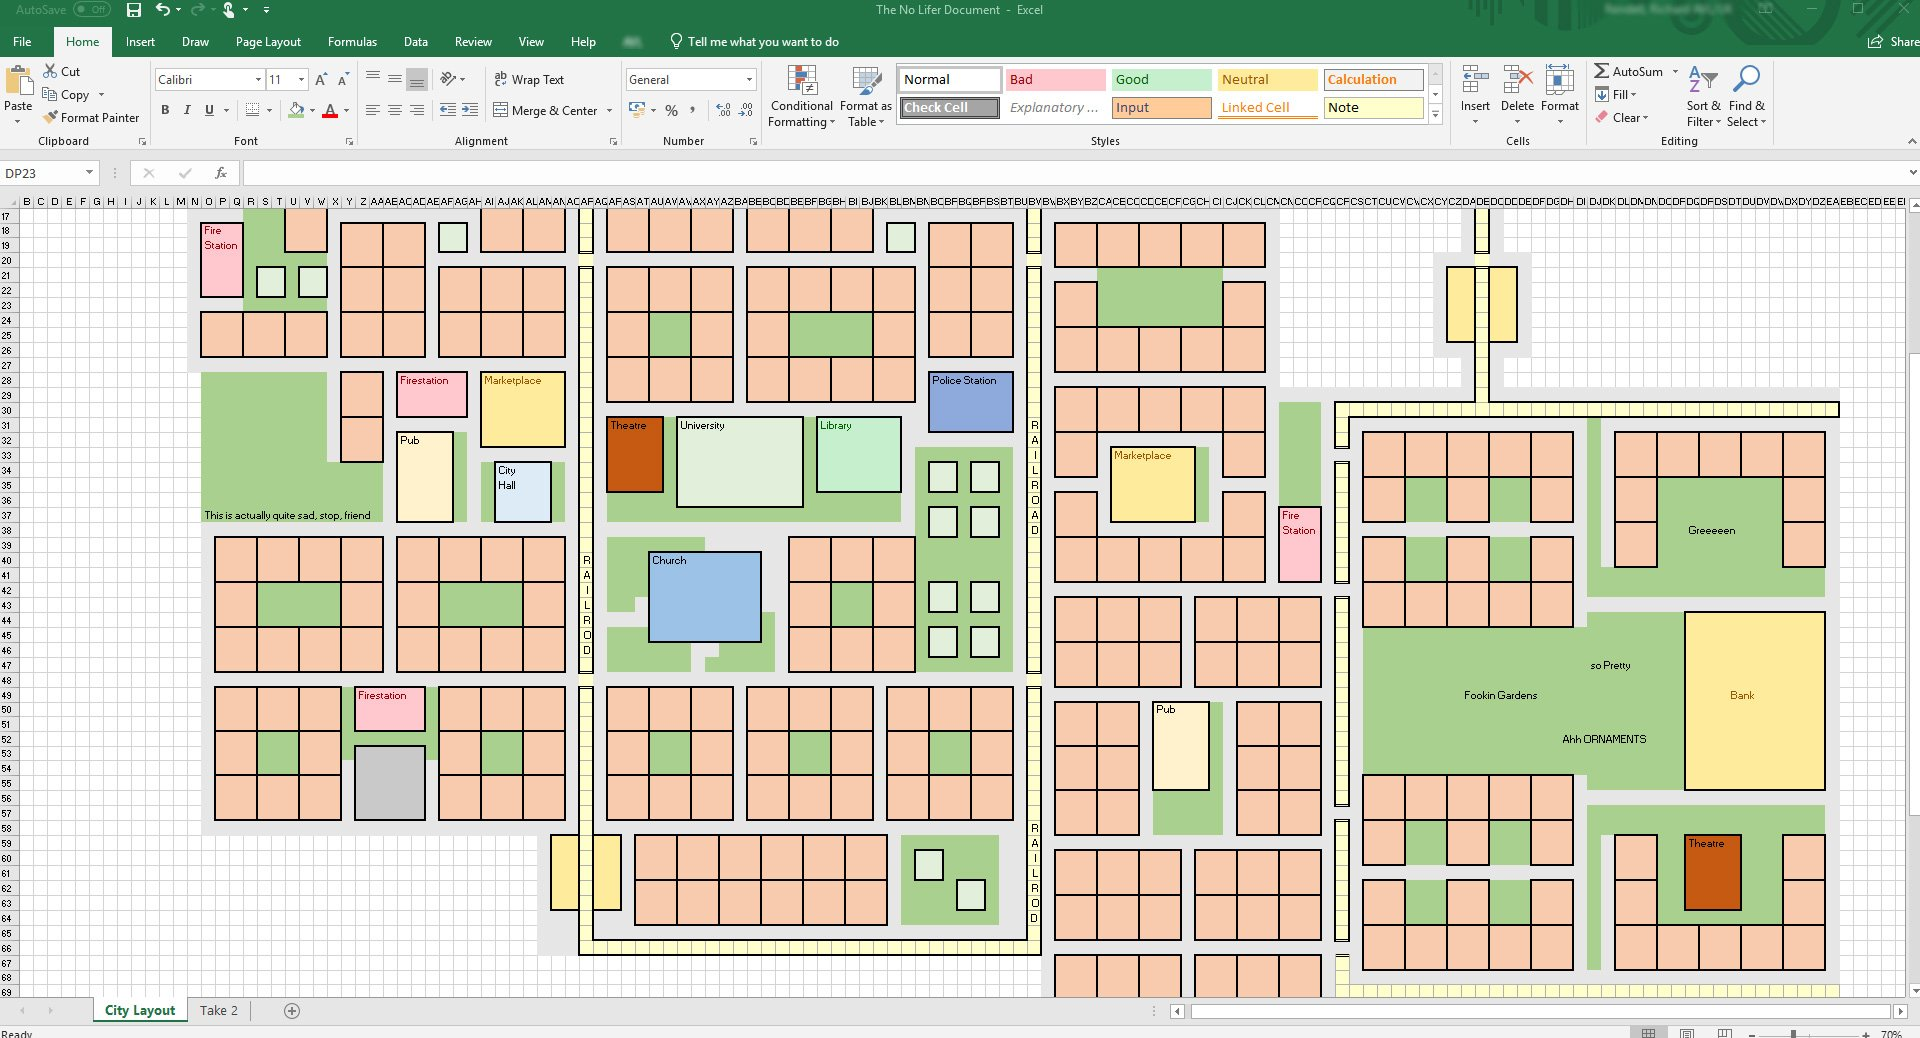 Recreating Anno 1800 in Excel at work